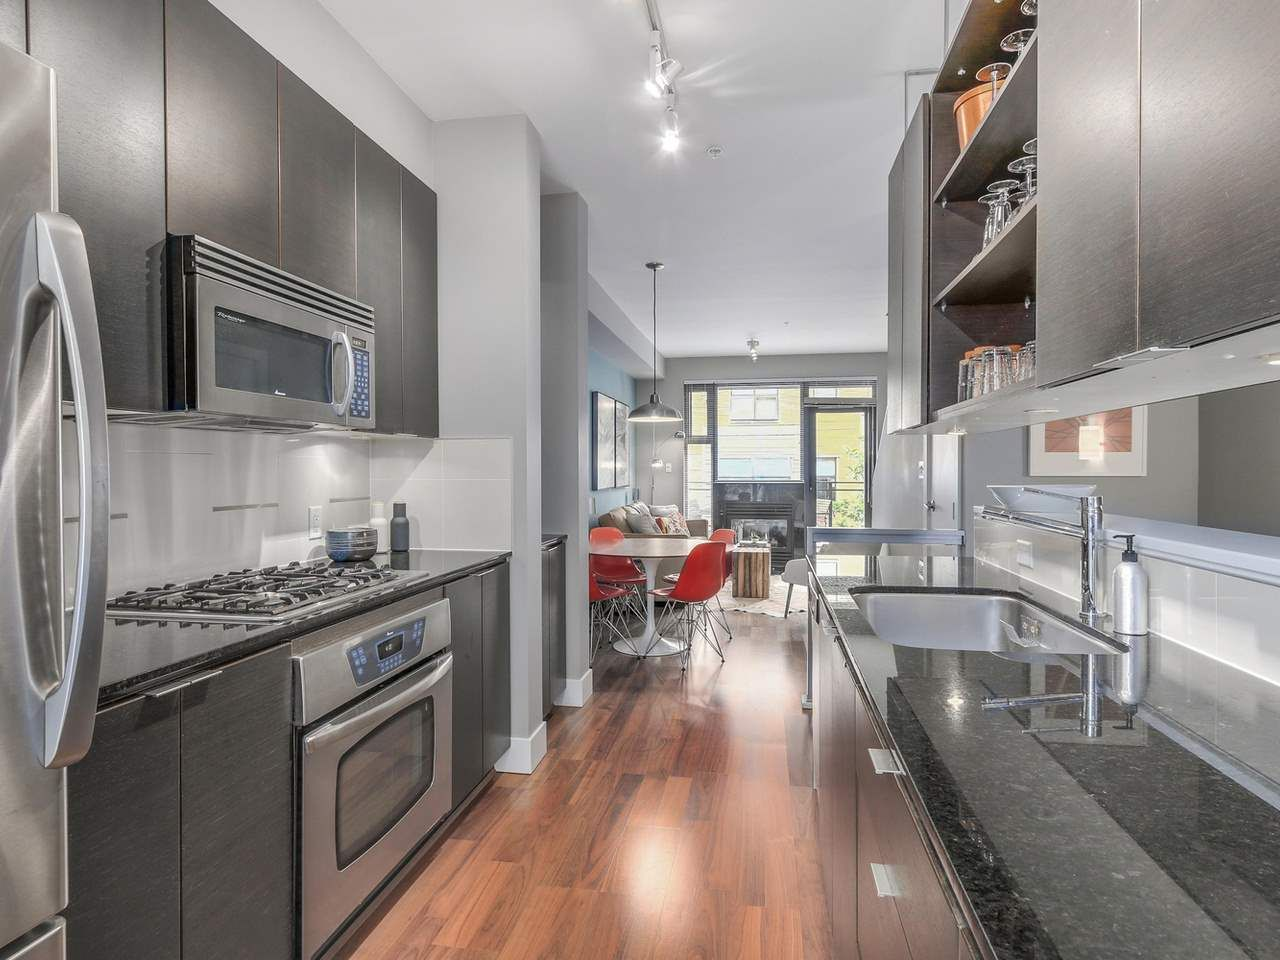 """Photo 4: Photos: 3748 COMMERCIAL Street in Vancouver: Victoria VE Townhouse for sale in """"BRIX 1"""" (Vancouver East)  : MLS®# R2107827"""